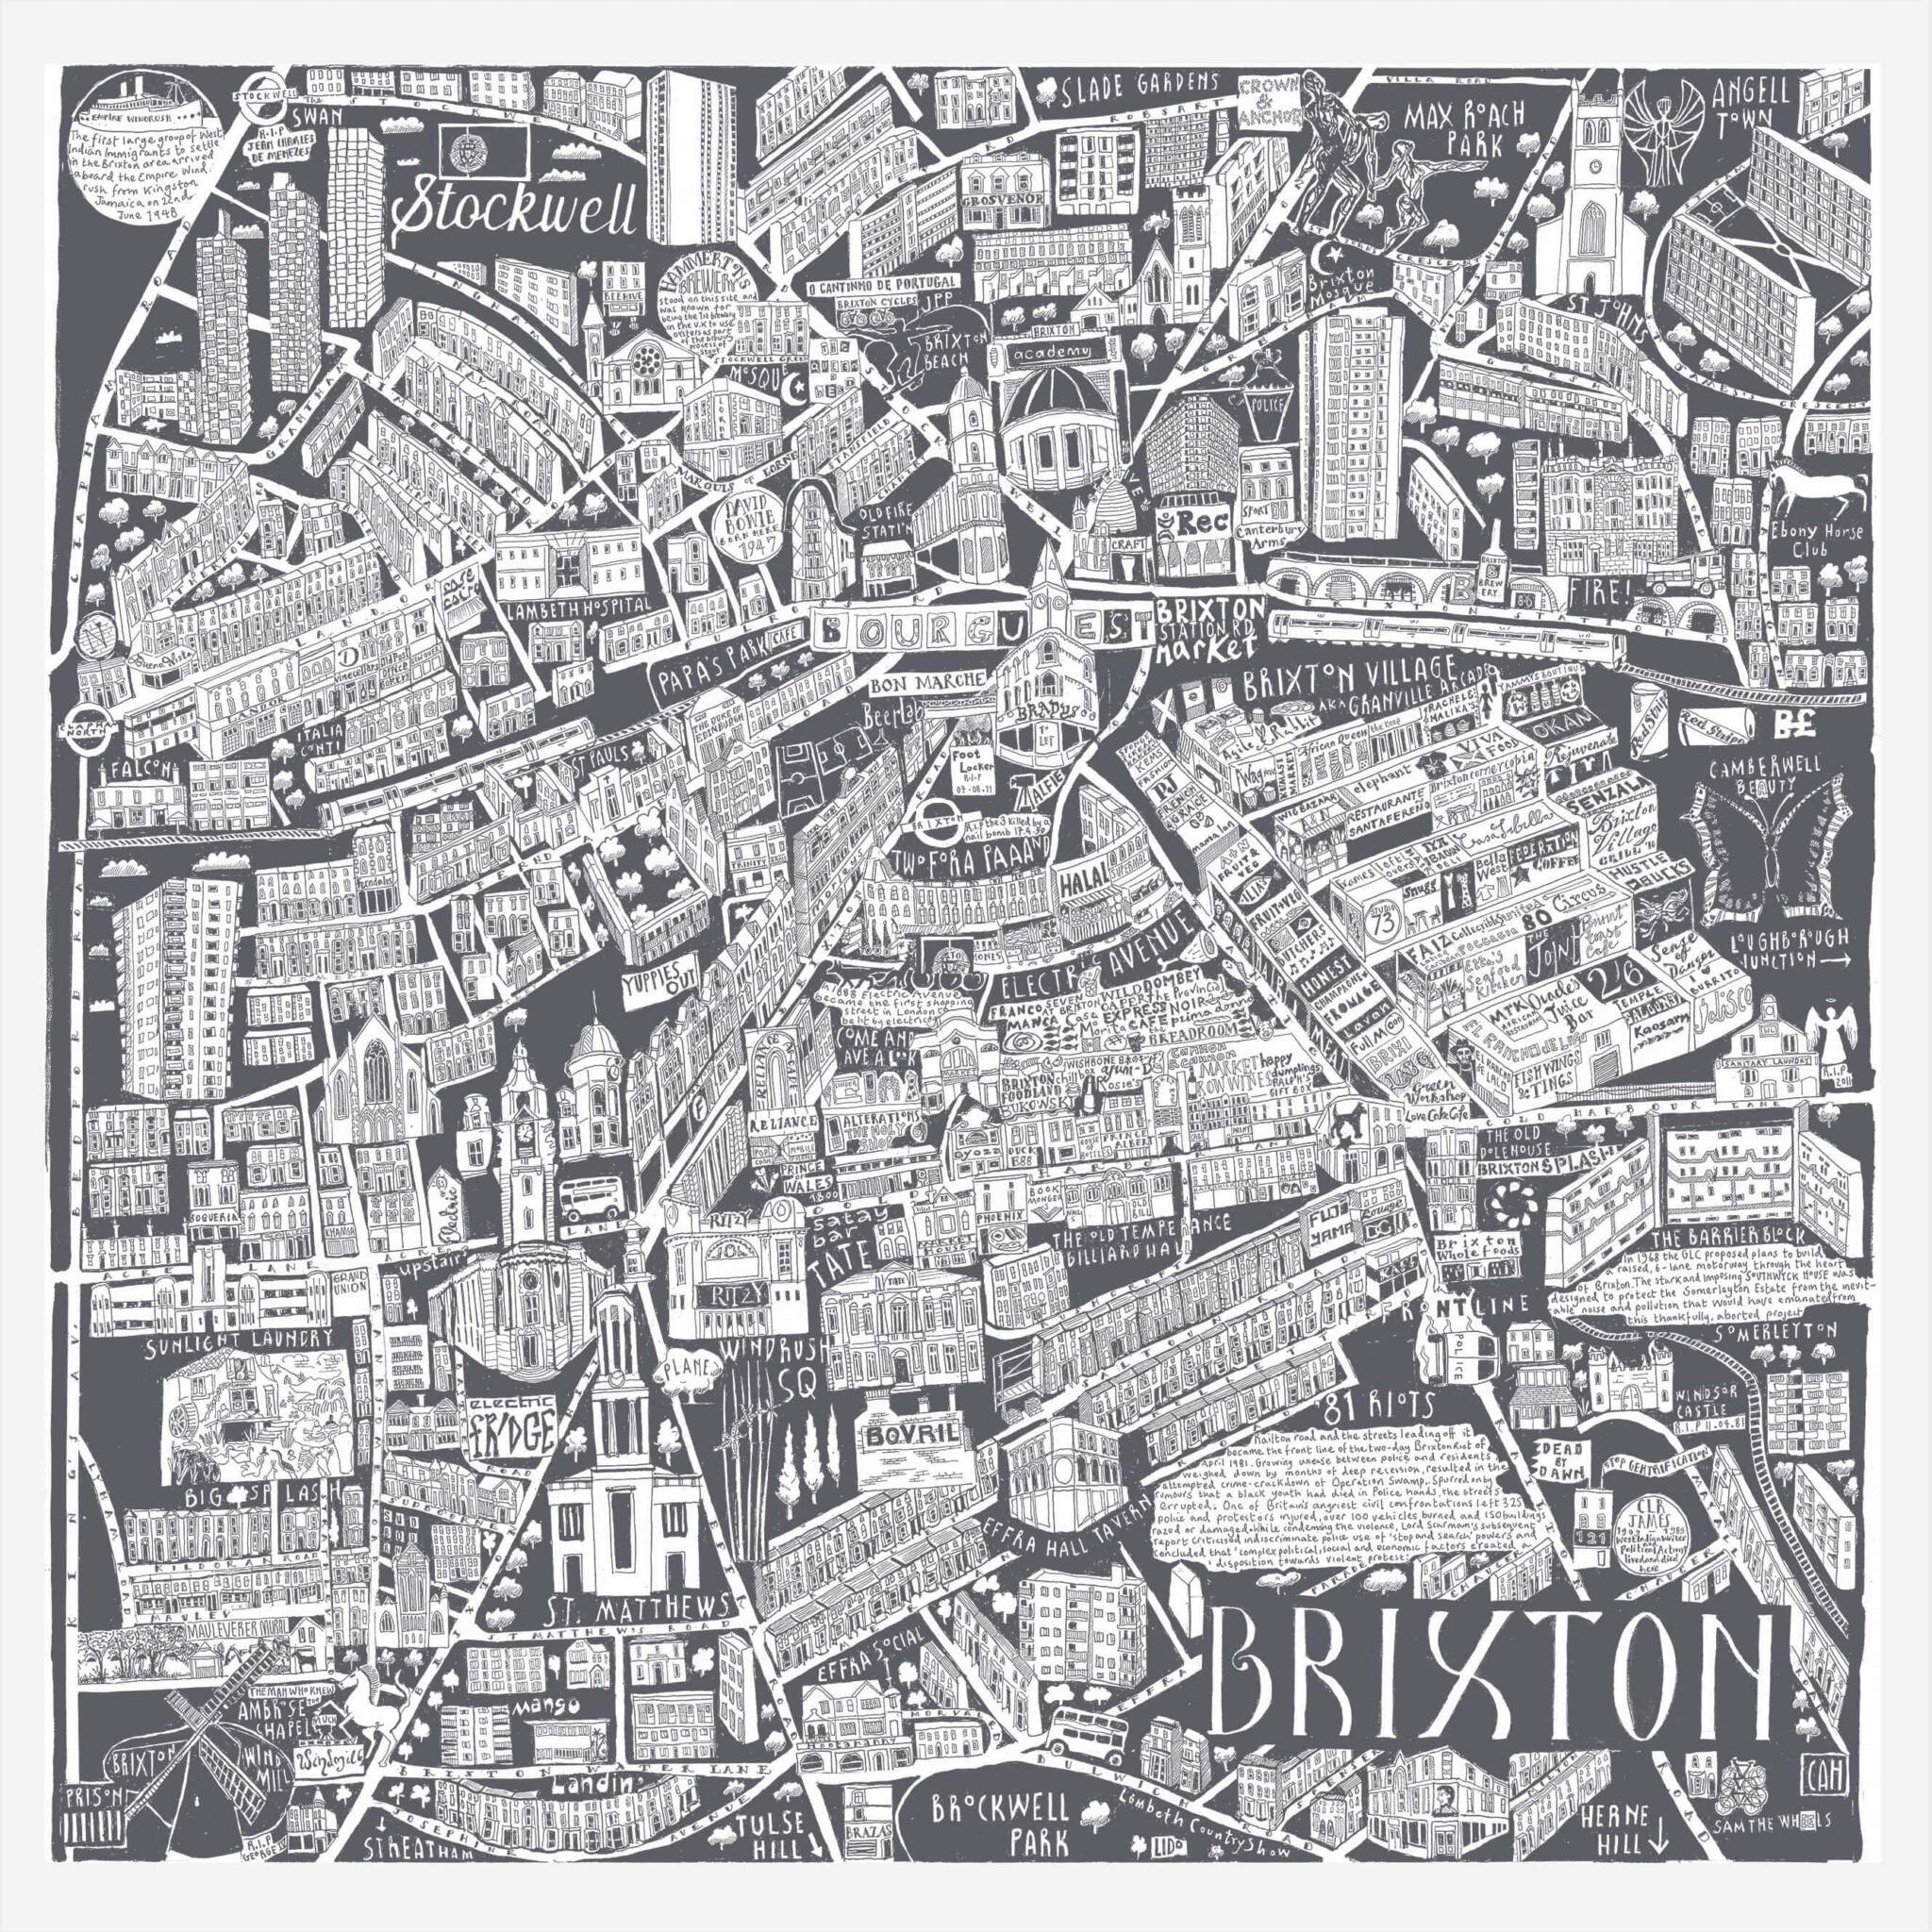 CZP Brixton Grey - Brixton Illustrated Map by Caroline Harper